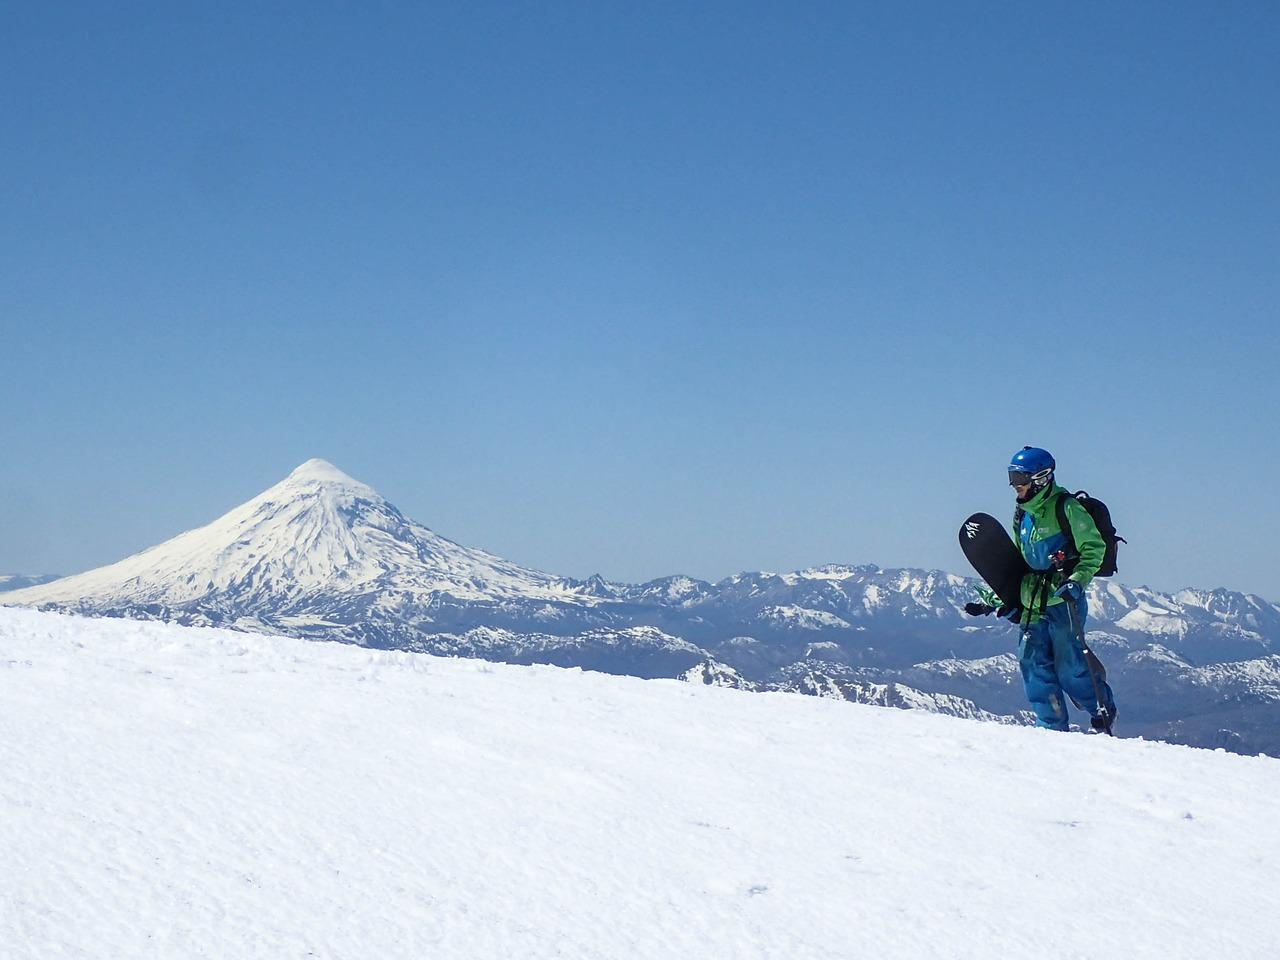 5 Easy-To-Learn But Impressive Ski Tricks | GearJunkie